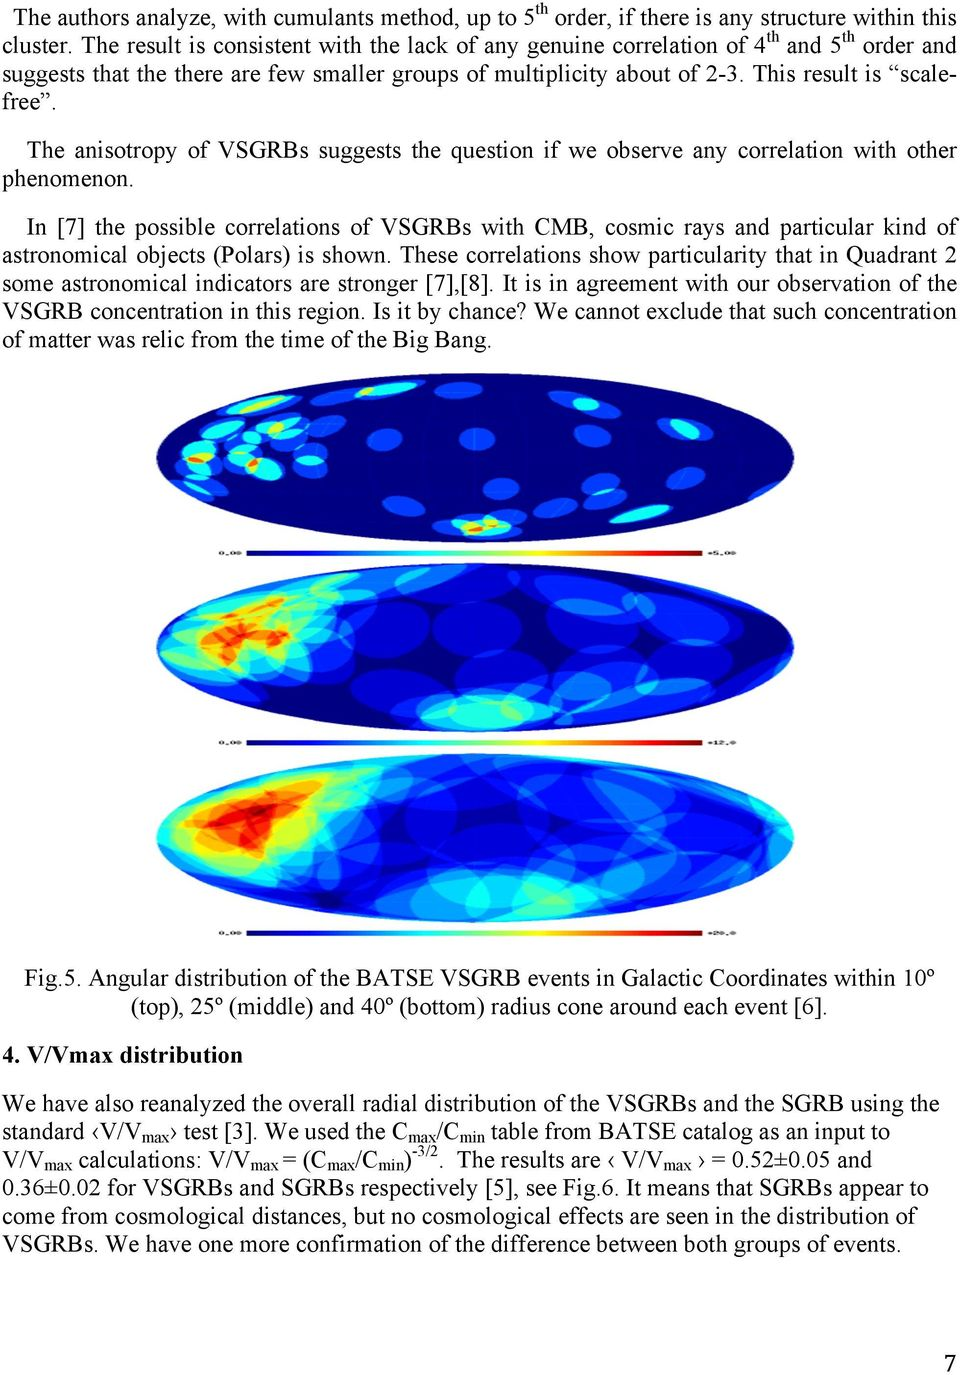 The anisotropy of VSGRBs suggests the question if we observe any correlation with other phenomenon.